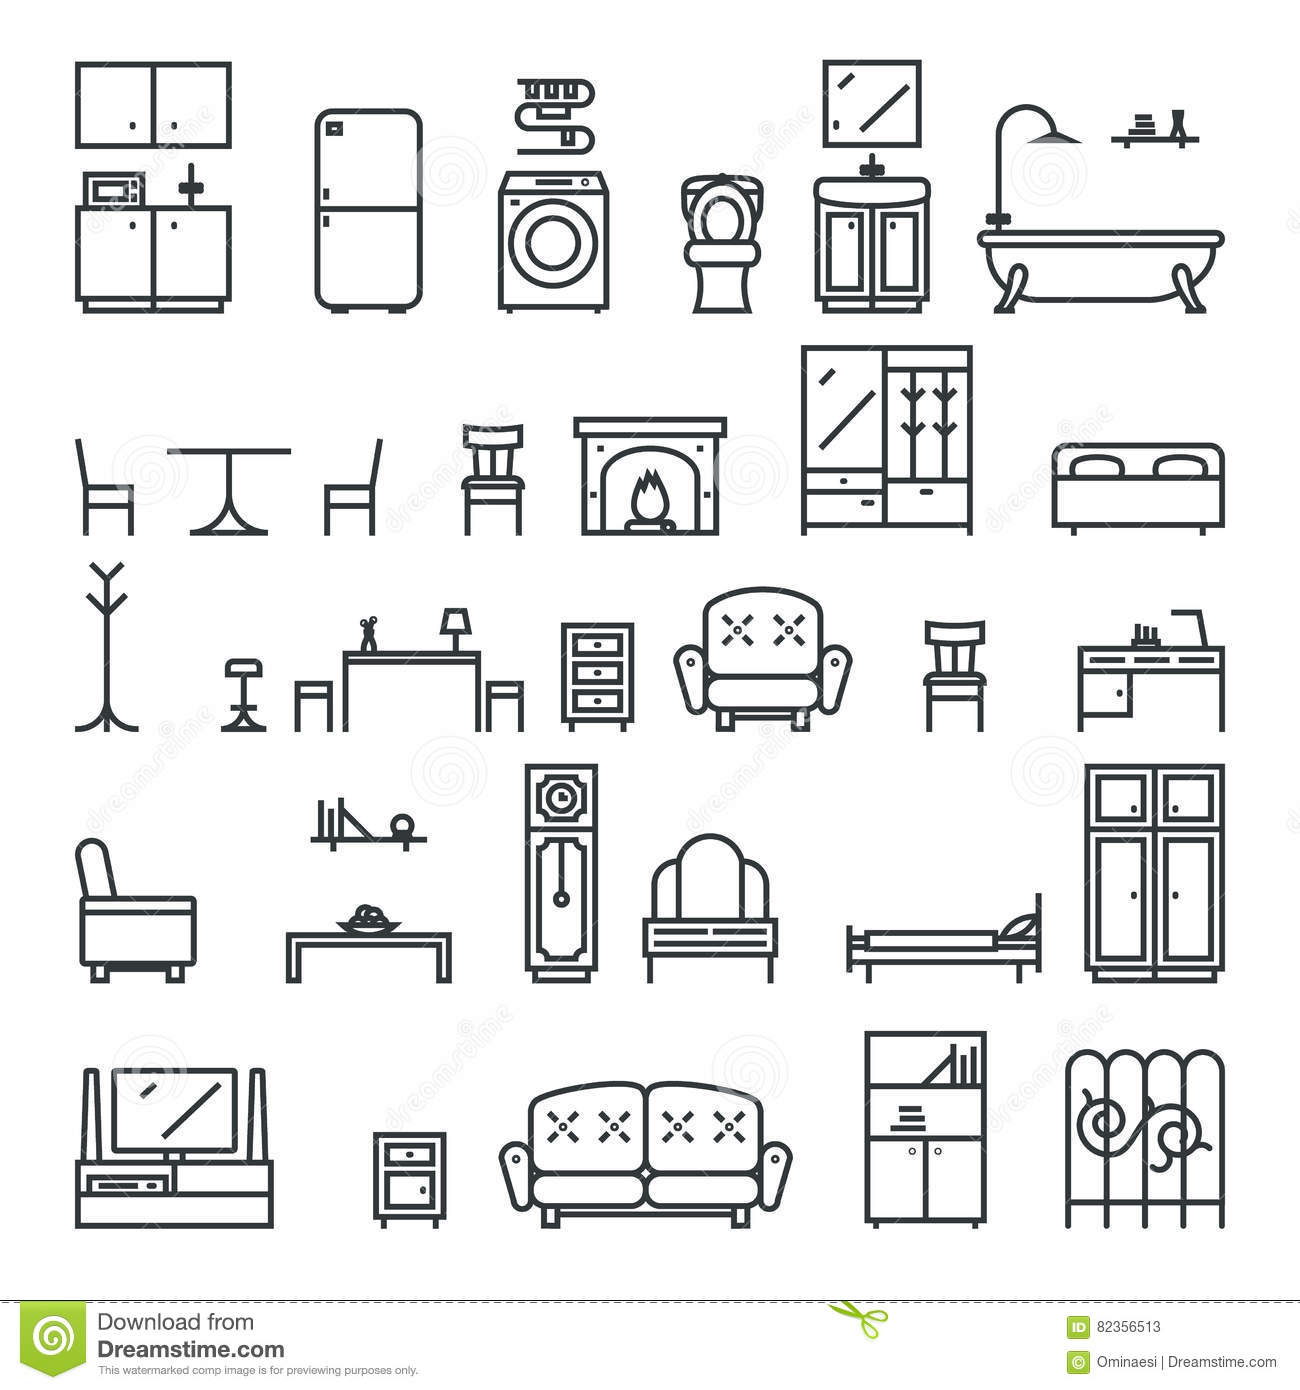 Flat furniture icons and symbols set for living room for Simbologia en planos arquitectonicos